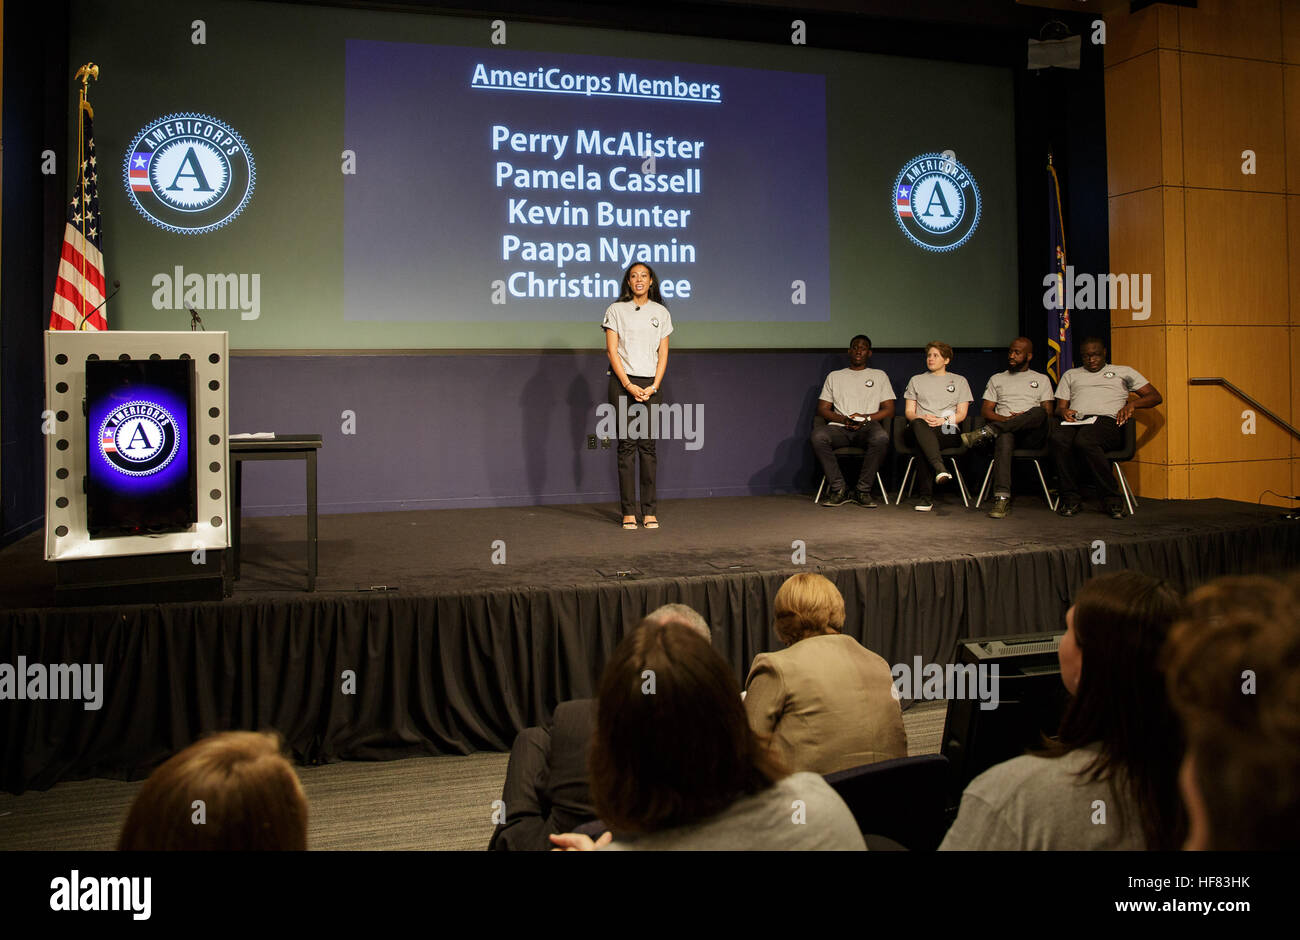 Pamela Cassell, a member of the AmeriCorps Class of 2016, speaks during a ceremony marking AmeriCorps' milestone - Stock Image